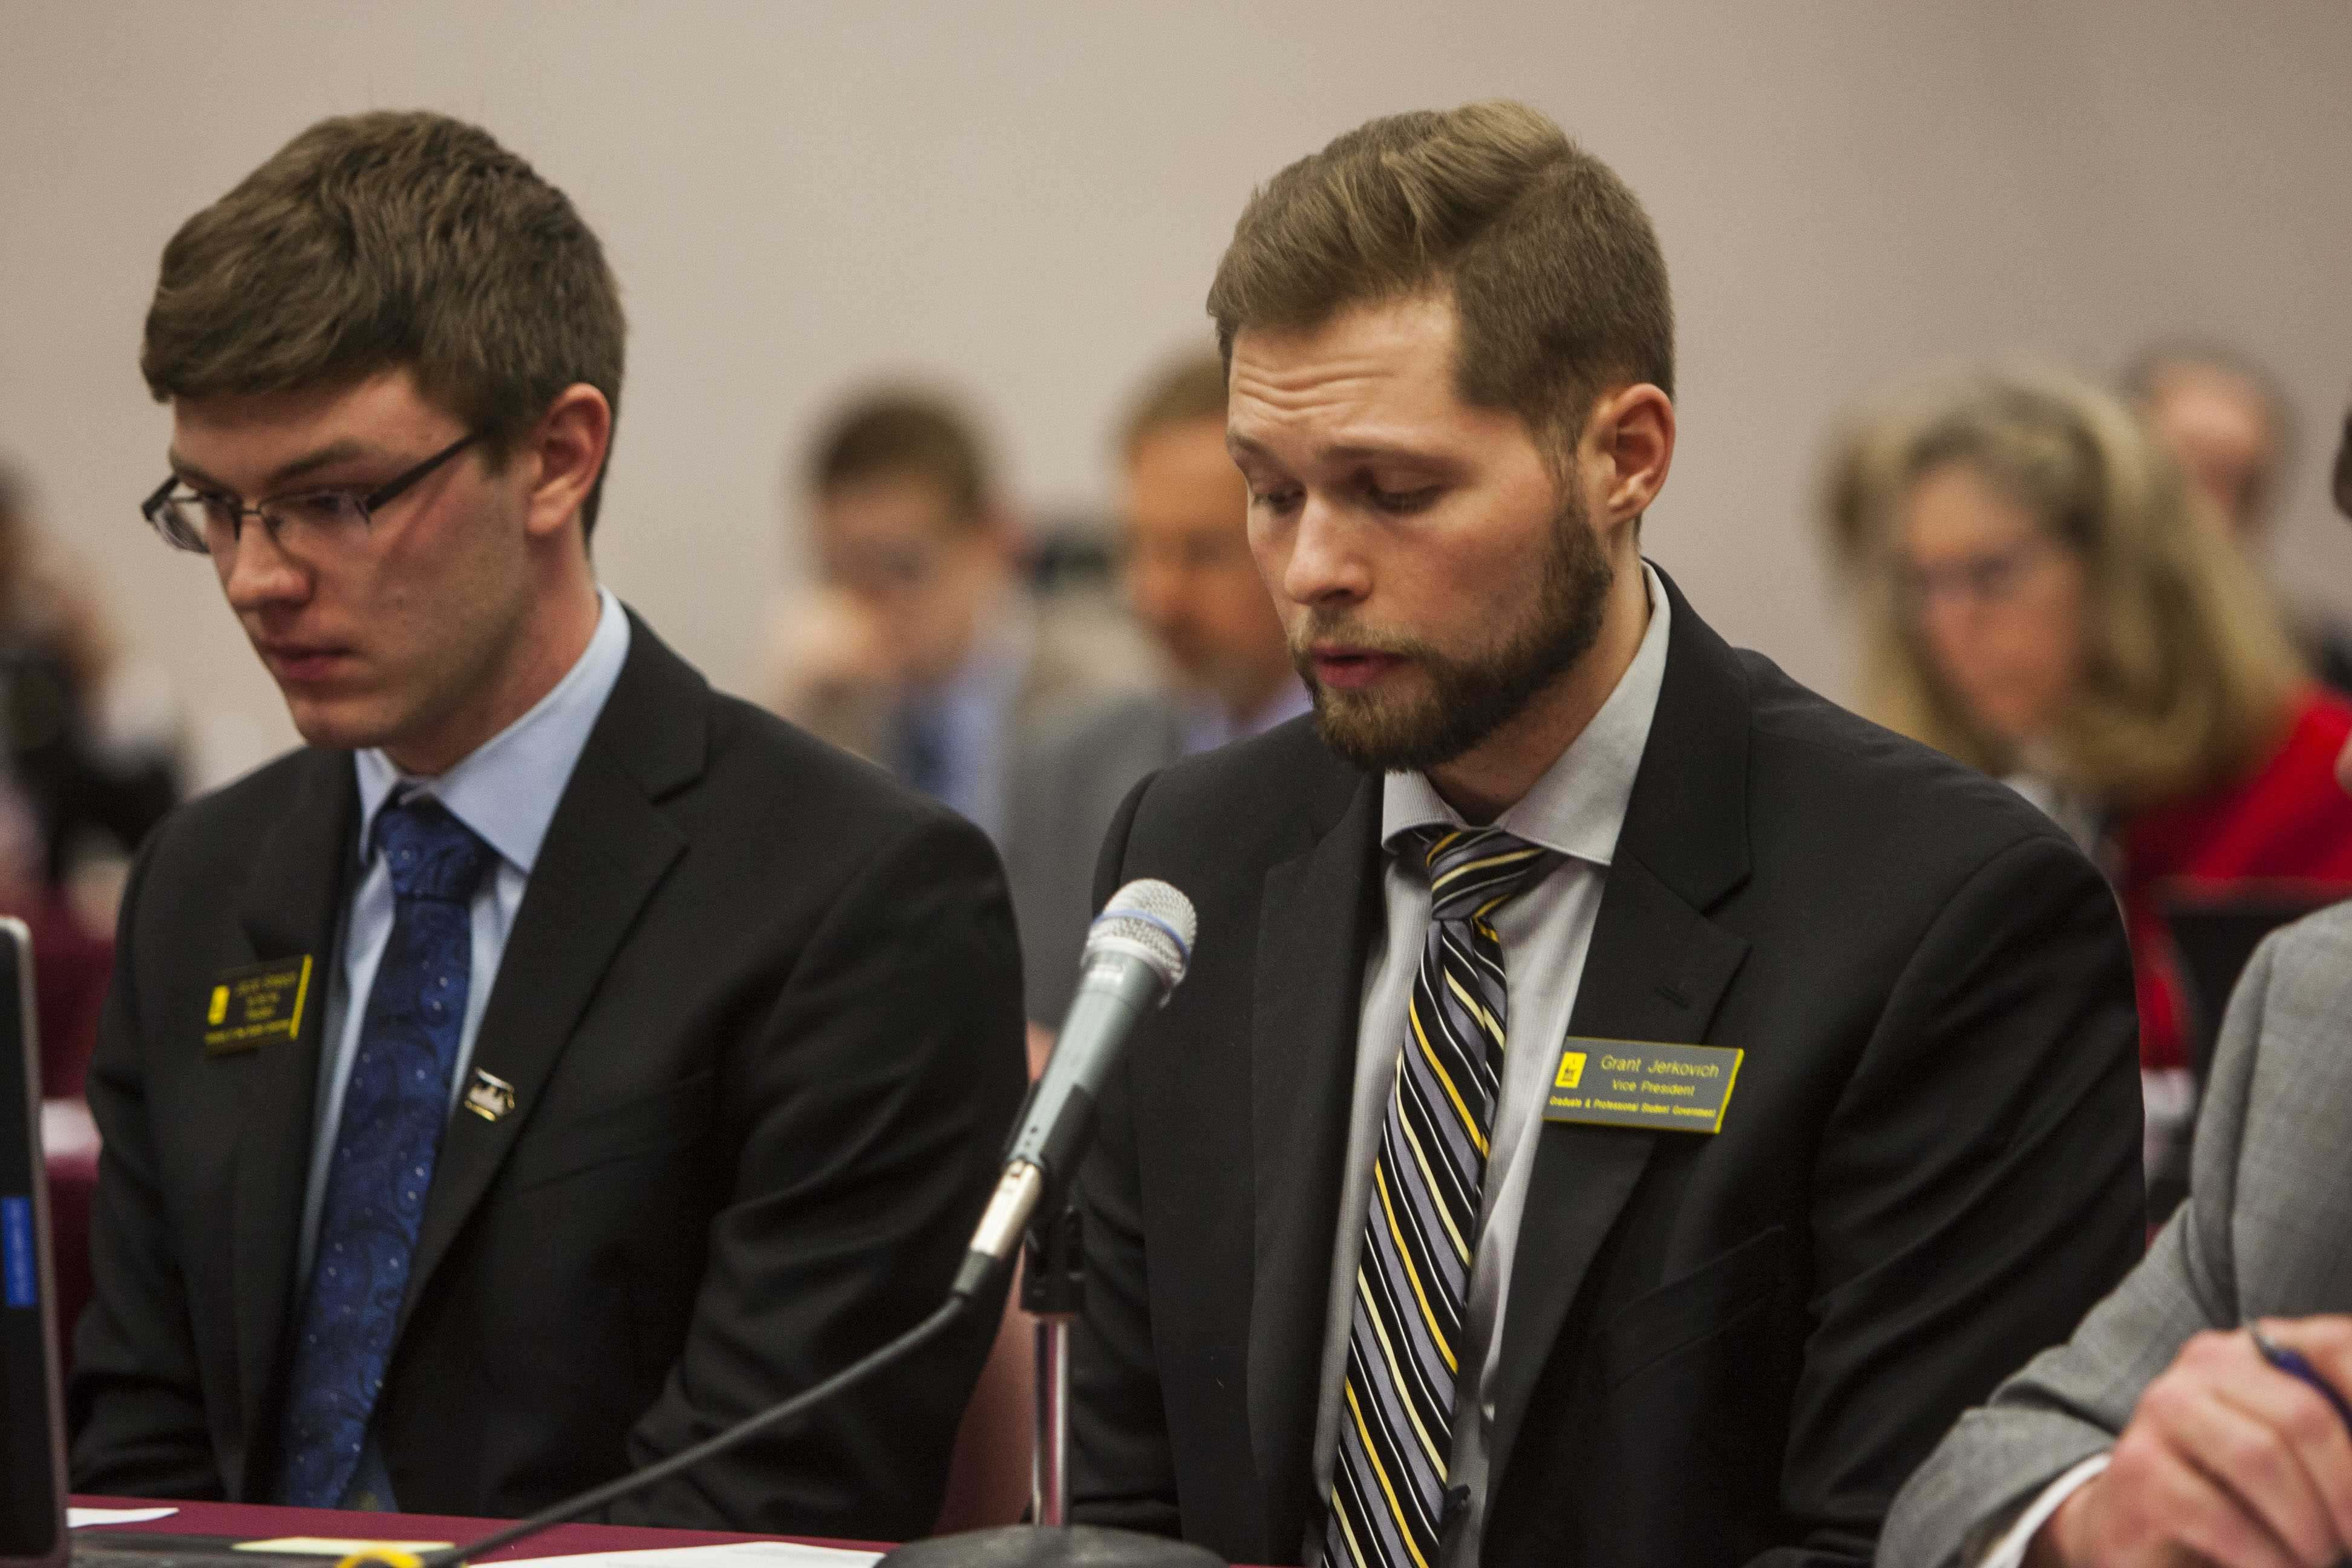 UISG President Jacob Simpson and GPSG Vice President Grant Jerkovich speak to the state Board of Regents about the effect of tuition increases on the student body on Thursday, April 12, 2018 at the Iowa School for the Deaf in Council Bluffs. (Emily Wangen/The Daily Iowan)